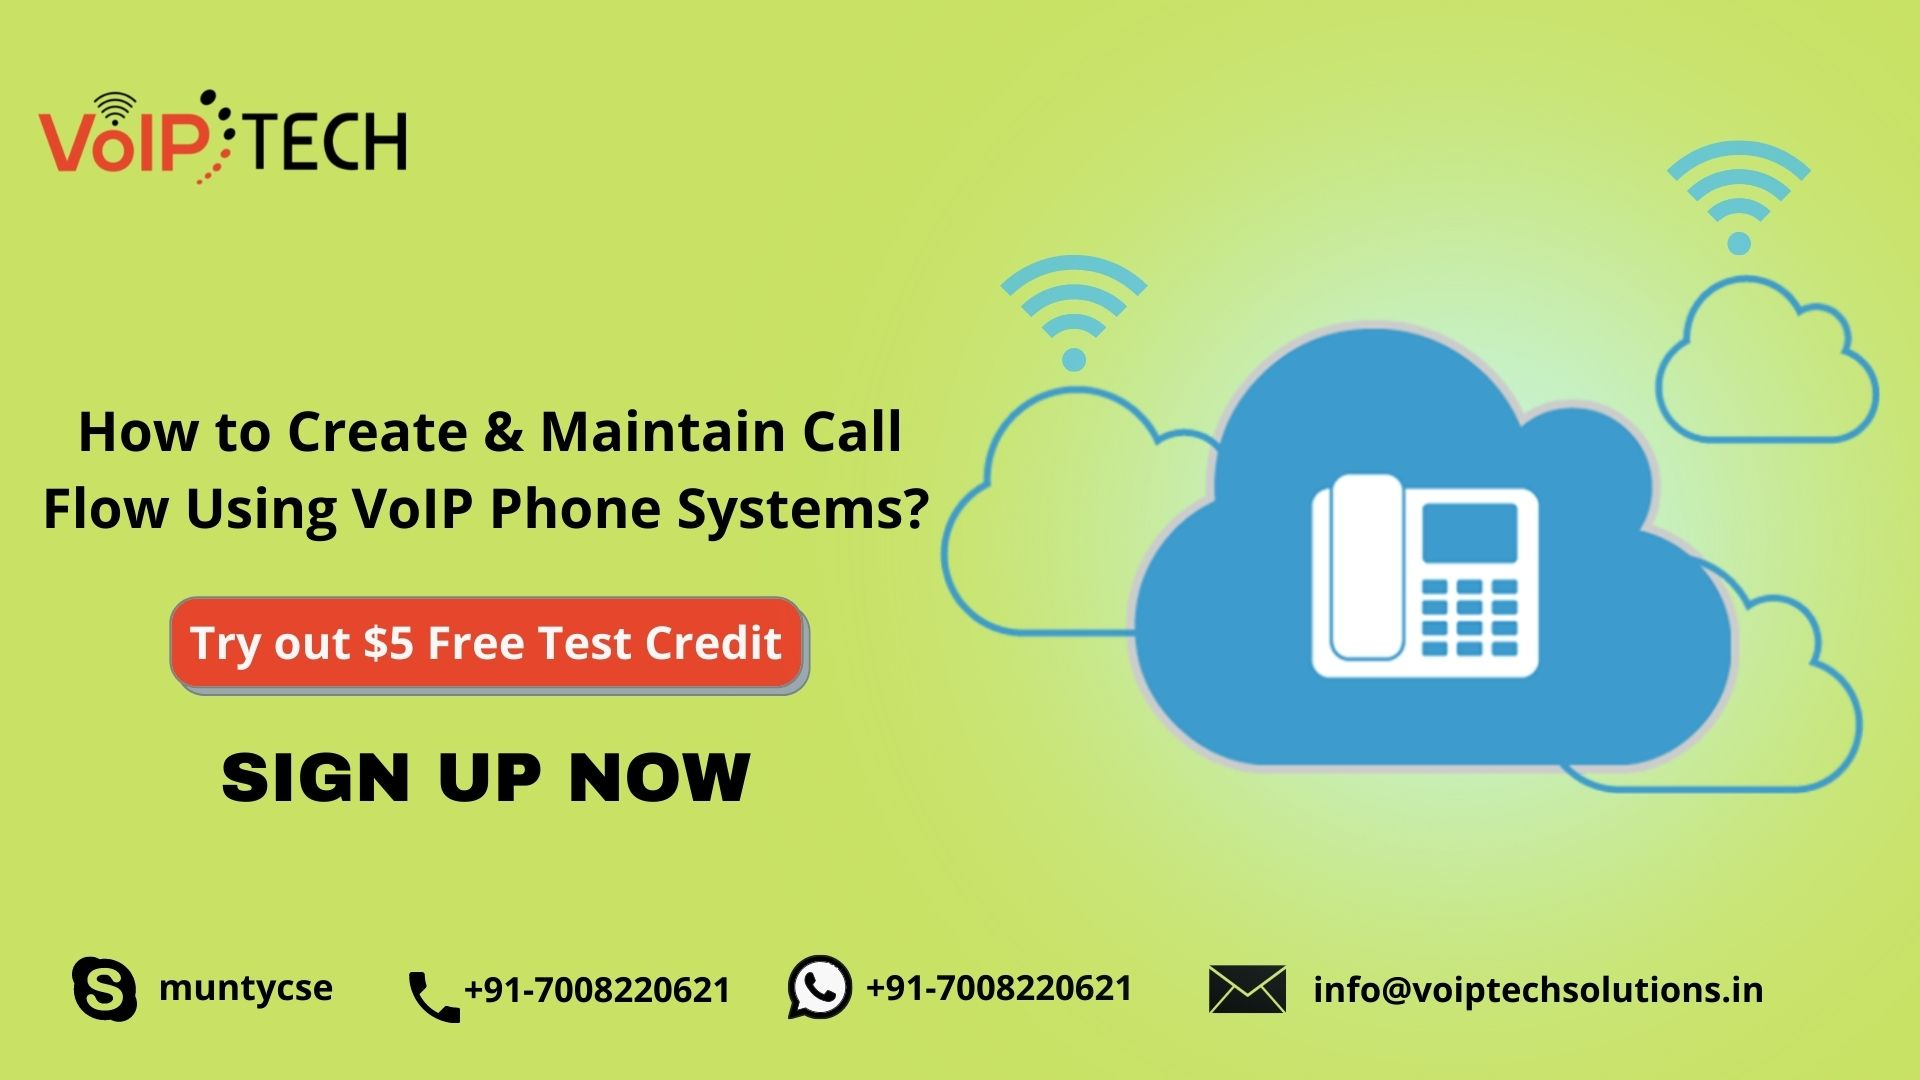 Call Flow, How to Create & Maintain Call Flow Using VoIP Phone Systems?,VoIP tech solutions, vici dialer, virtual number, Voip Providers, voip services in india, best sip provider, business voip providers, VoIP Phone Numbers, voip minutes provider, top voip providers, voip minutes, International VoIP Provider